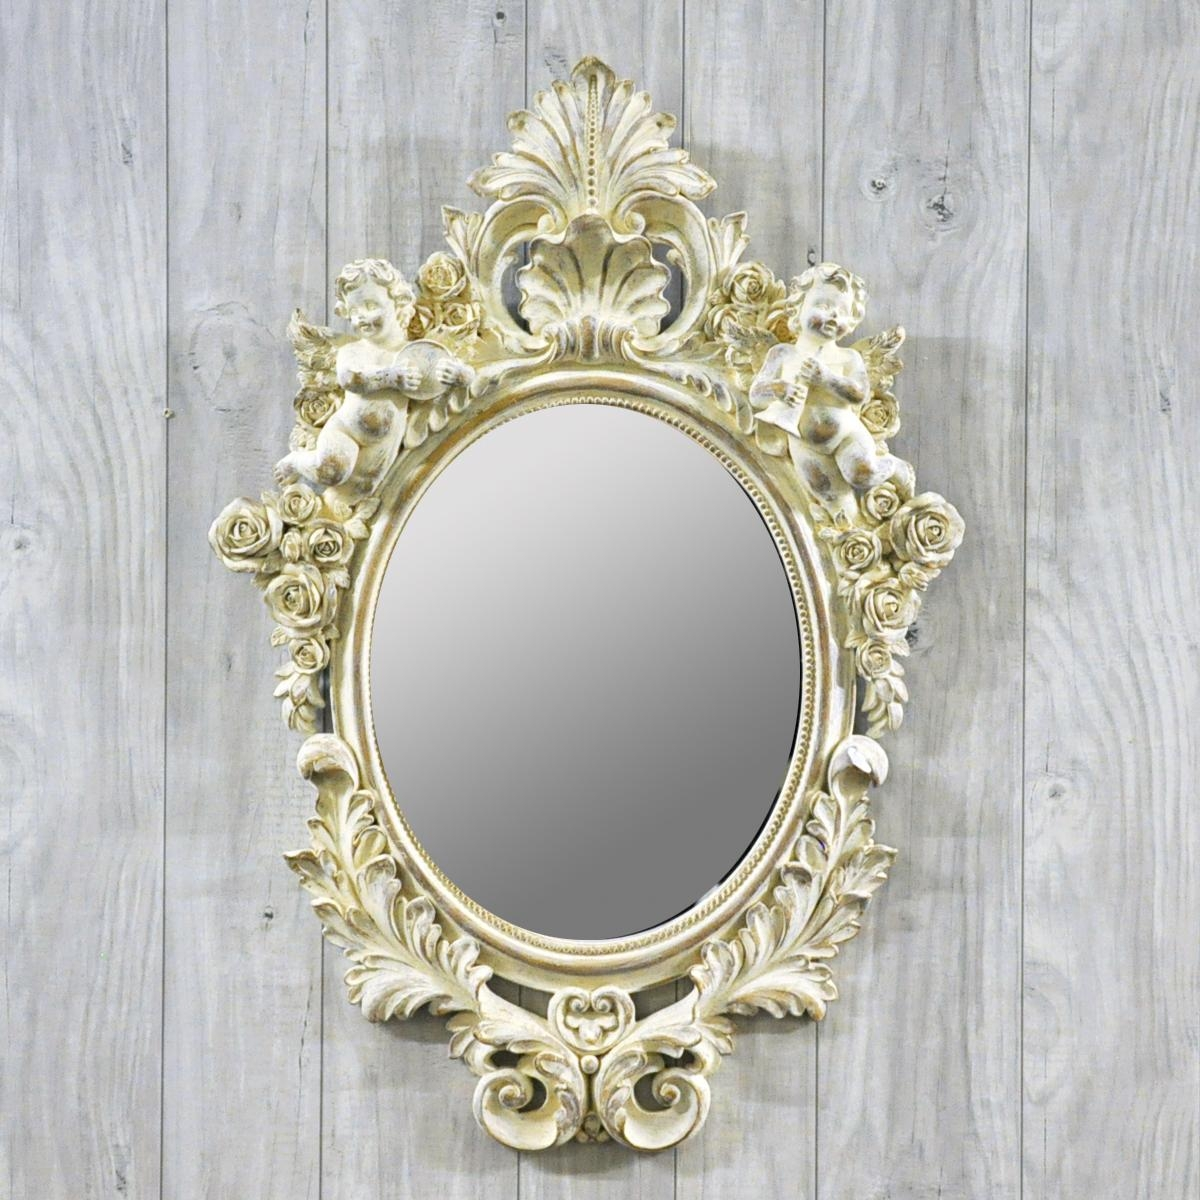 Vintage Style Antique Cream Ornate Wall Mirror – Acacia Trading With Antique Cream Mirror (Image 20 of 20)